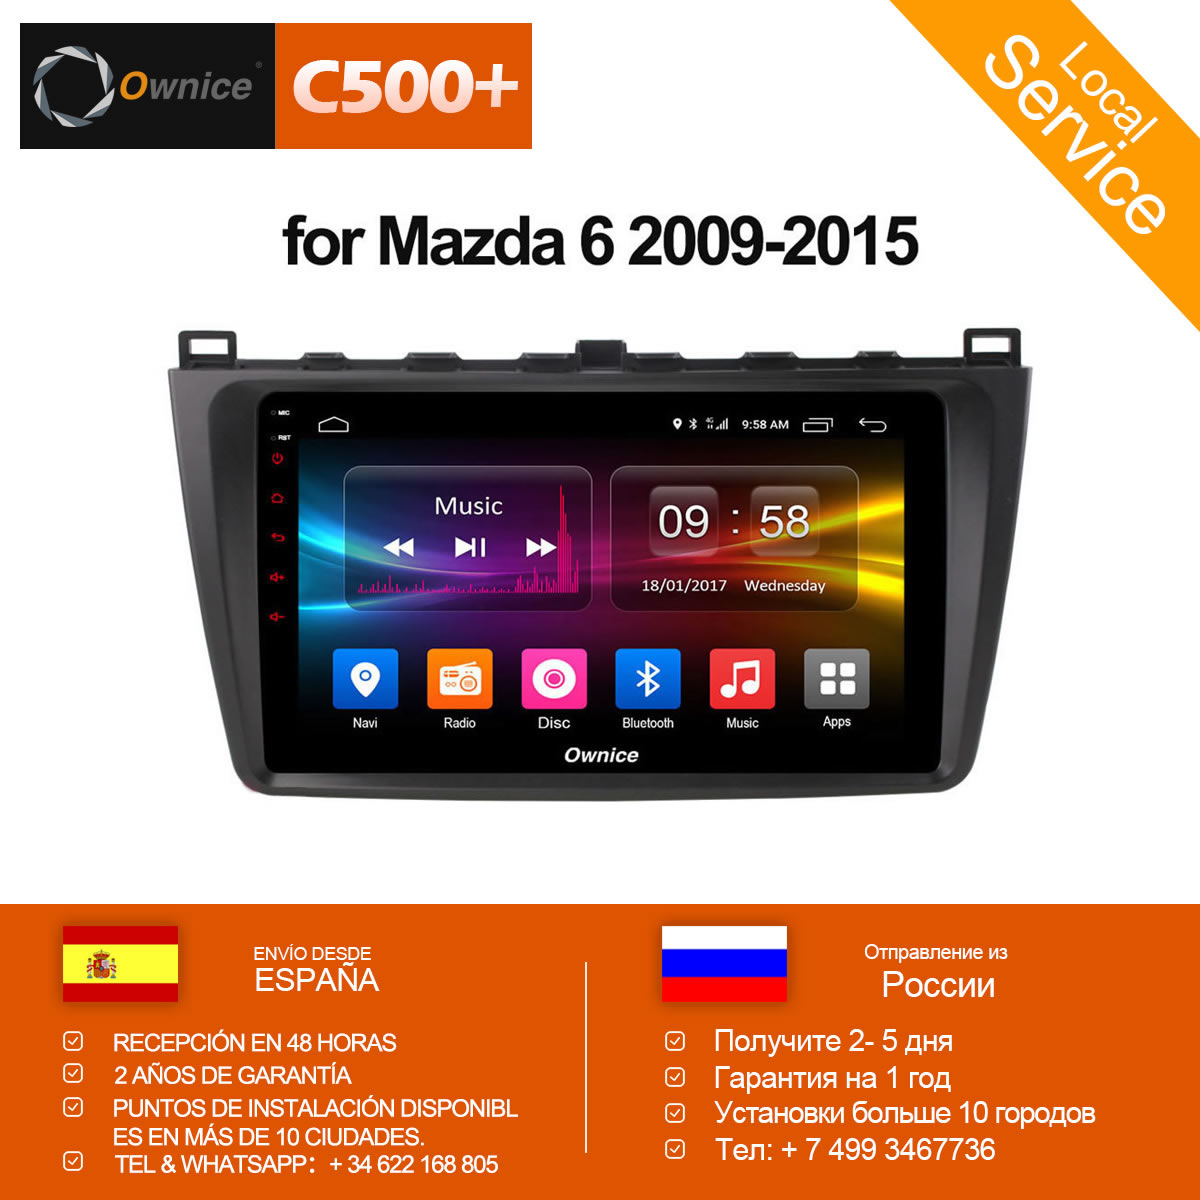 Ownice C500 + G10 Octa Core 2 gb RAM 32g ROM Android voiture dvd 8.1 gps Pour Mazda 6 sommet 2009-2015 wifi 4g LTE Radio DAB + DVR